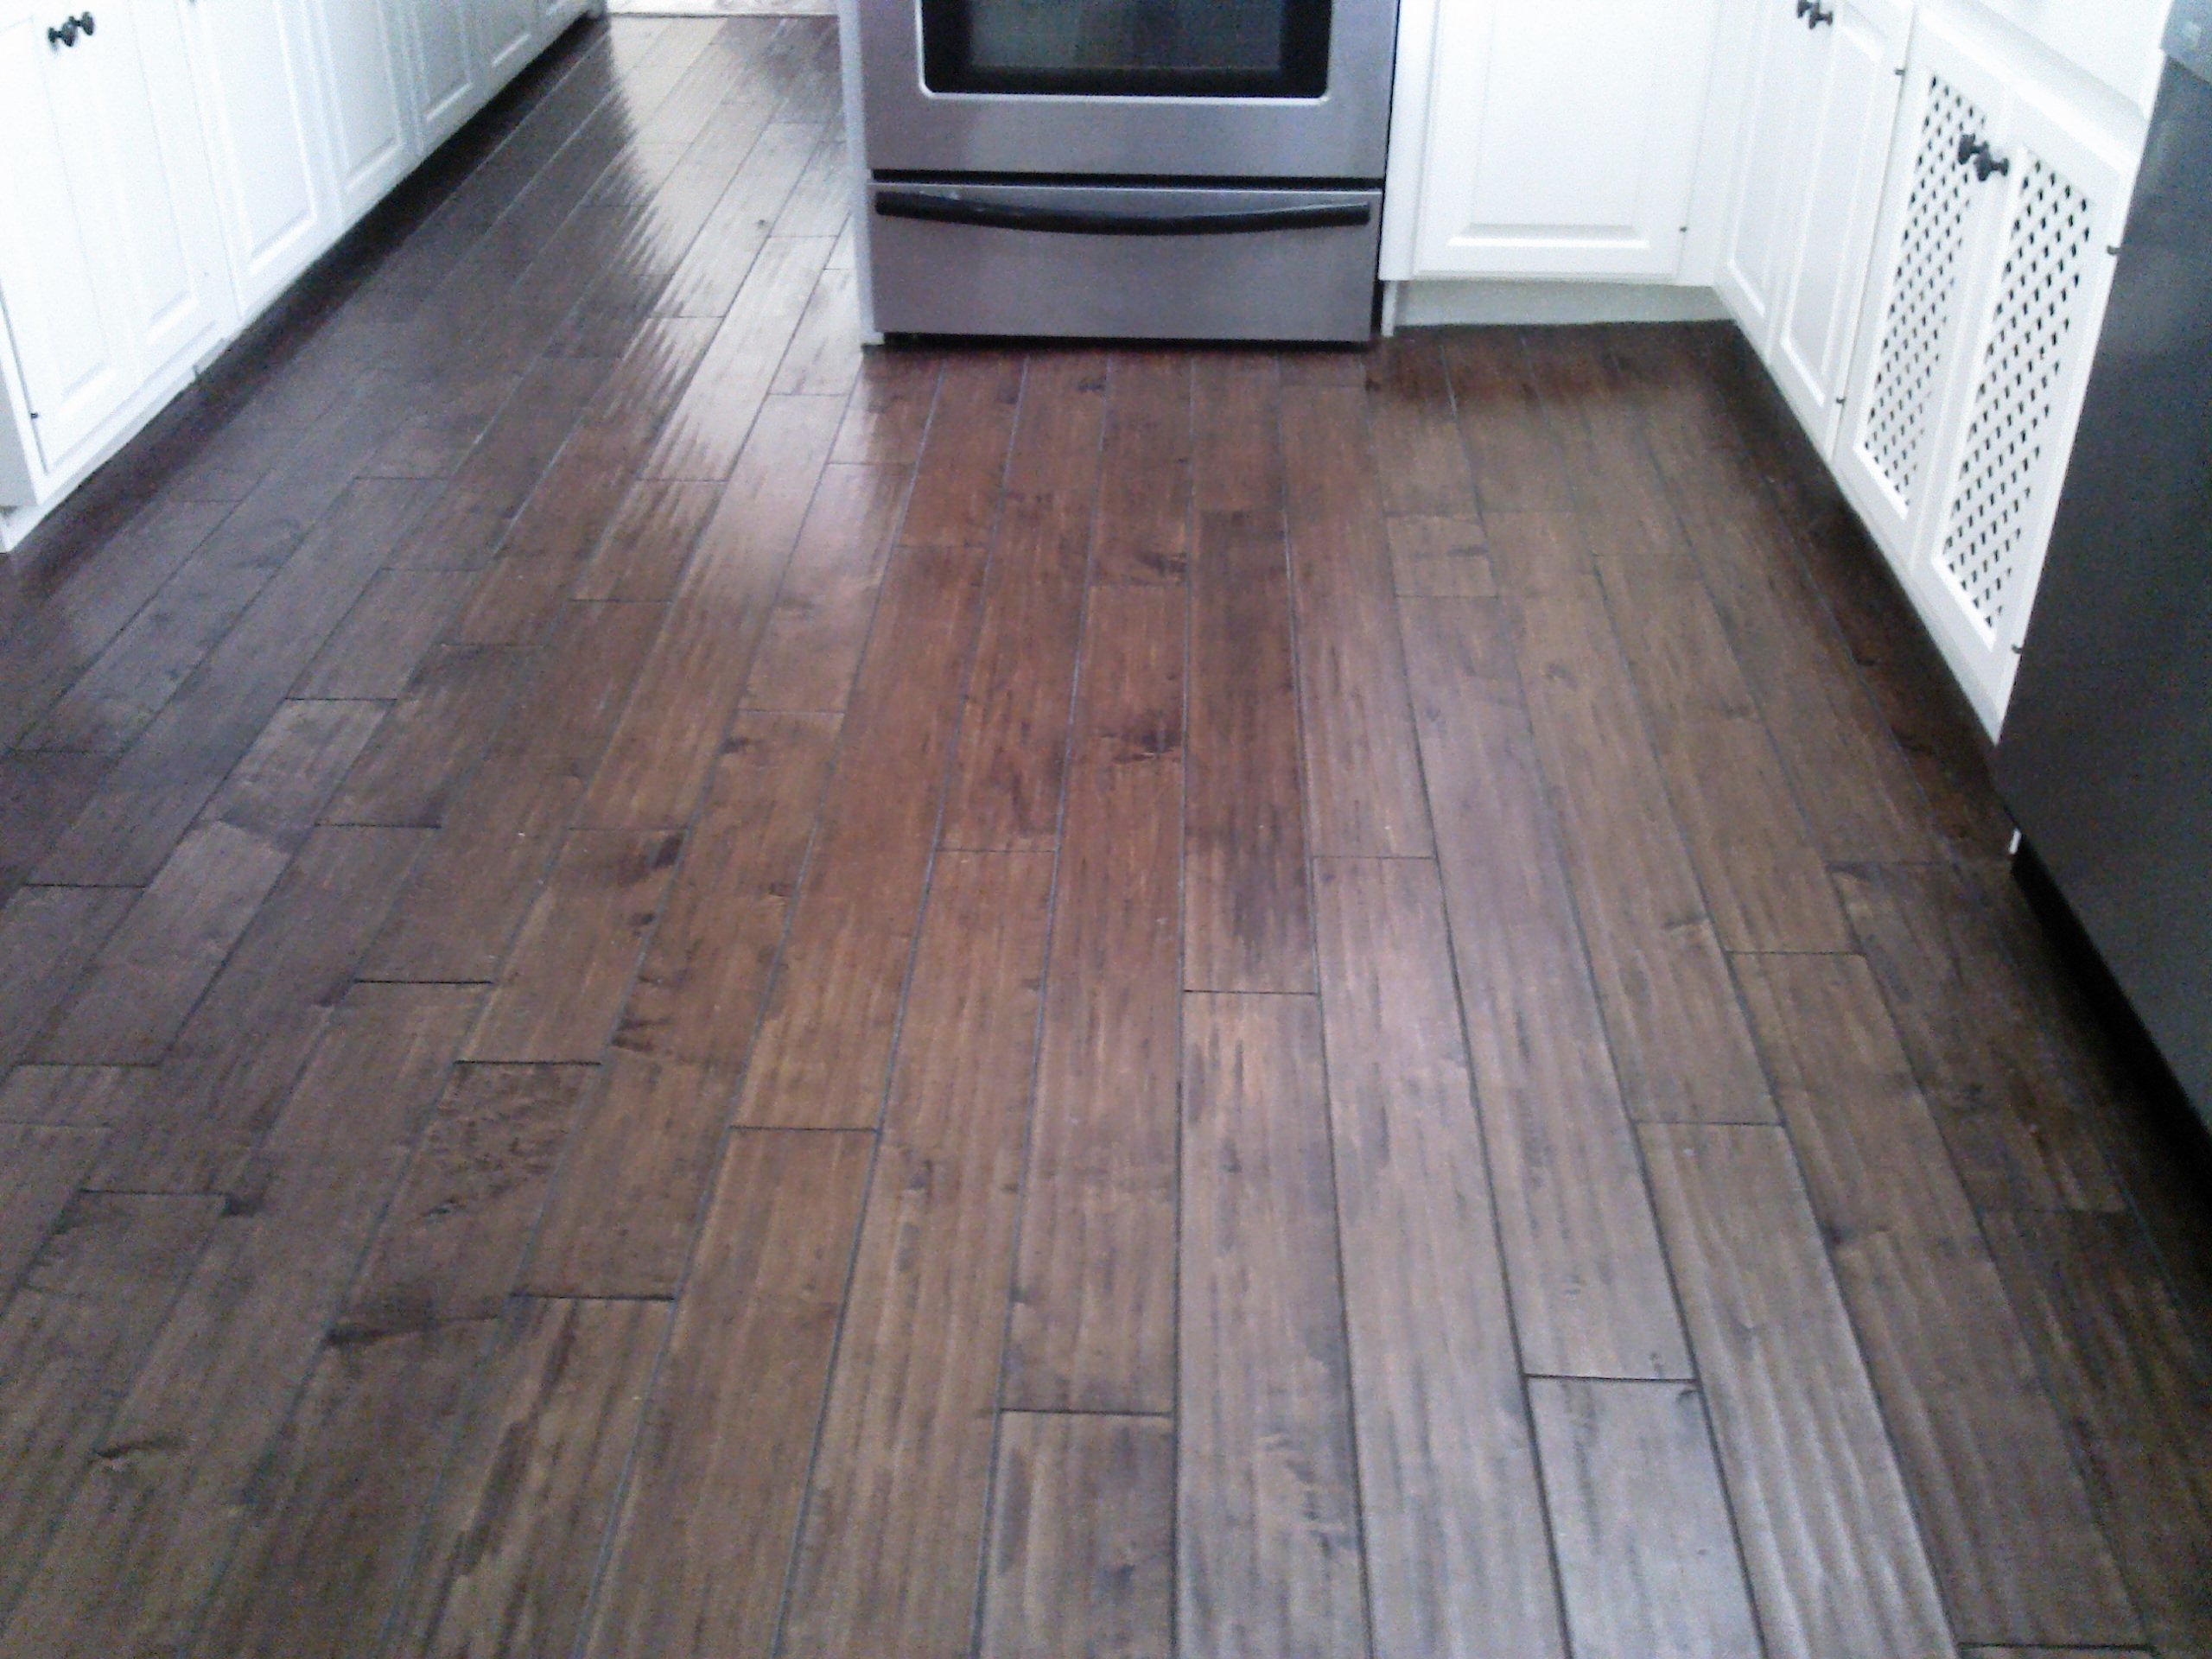 Laminate Wood Flooring in Kitchen Ratings Reviews kitchen laminate flooring